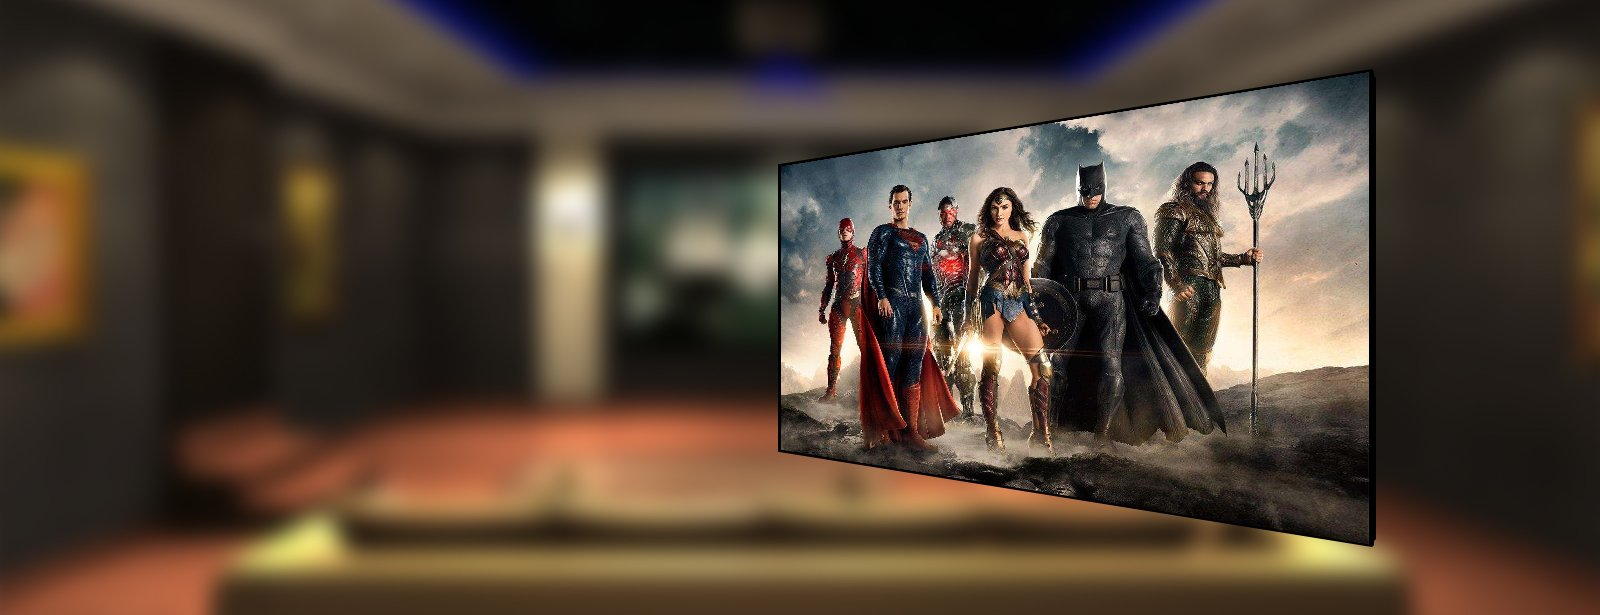 category-Best Short Throw Theater Projector And Ultra Short Focus Projector -XY Screens-img